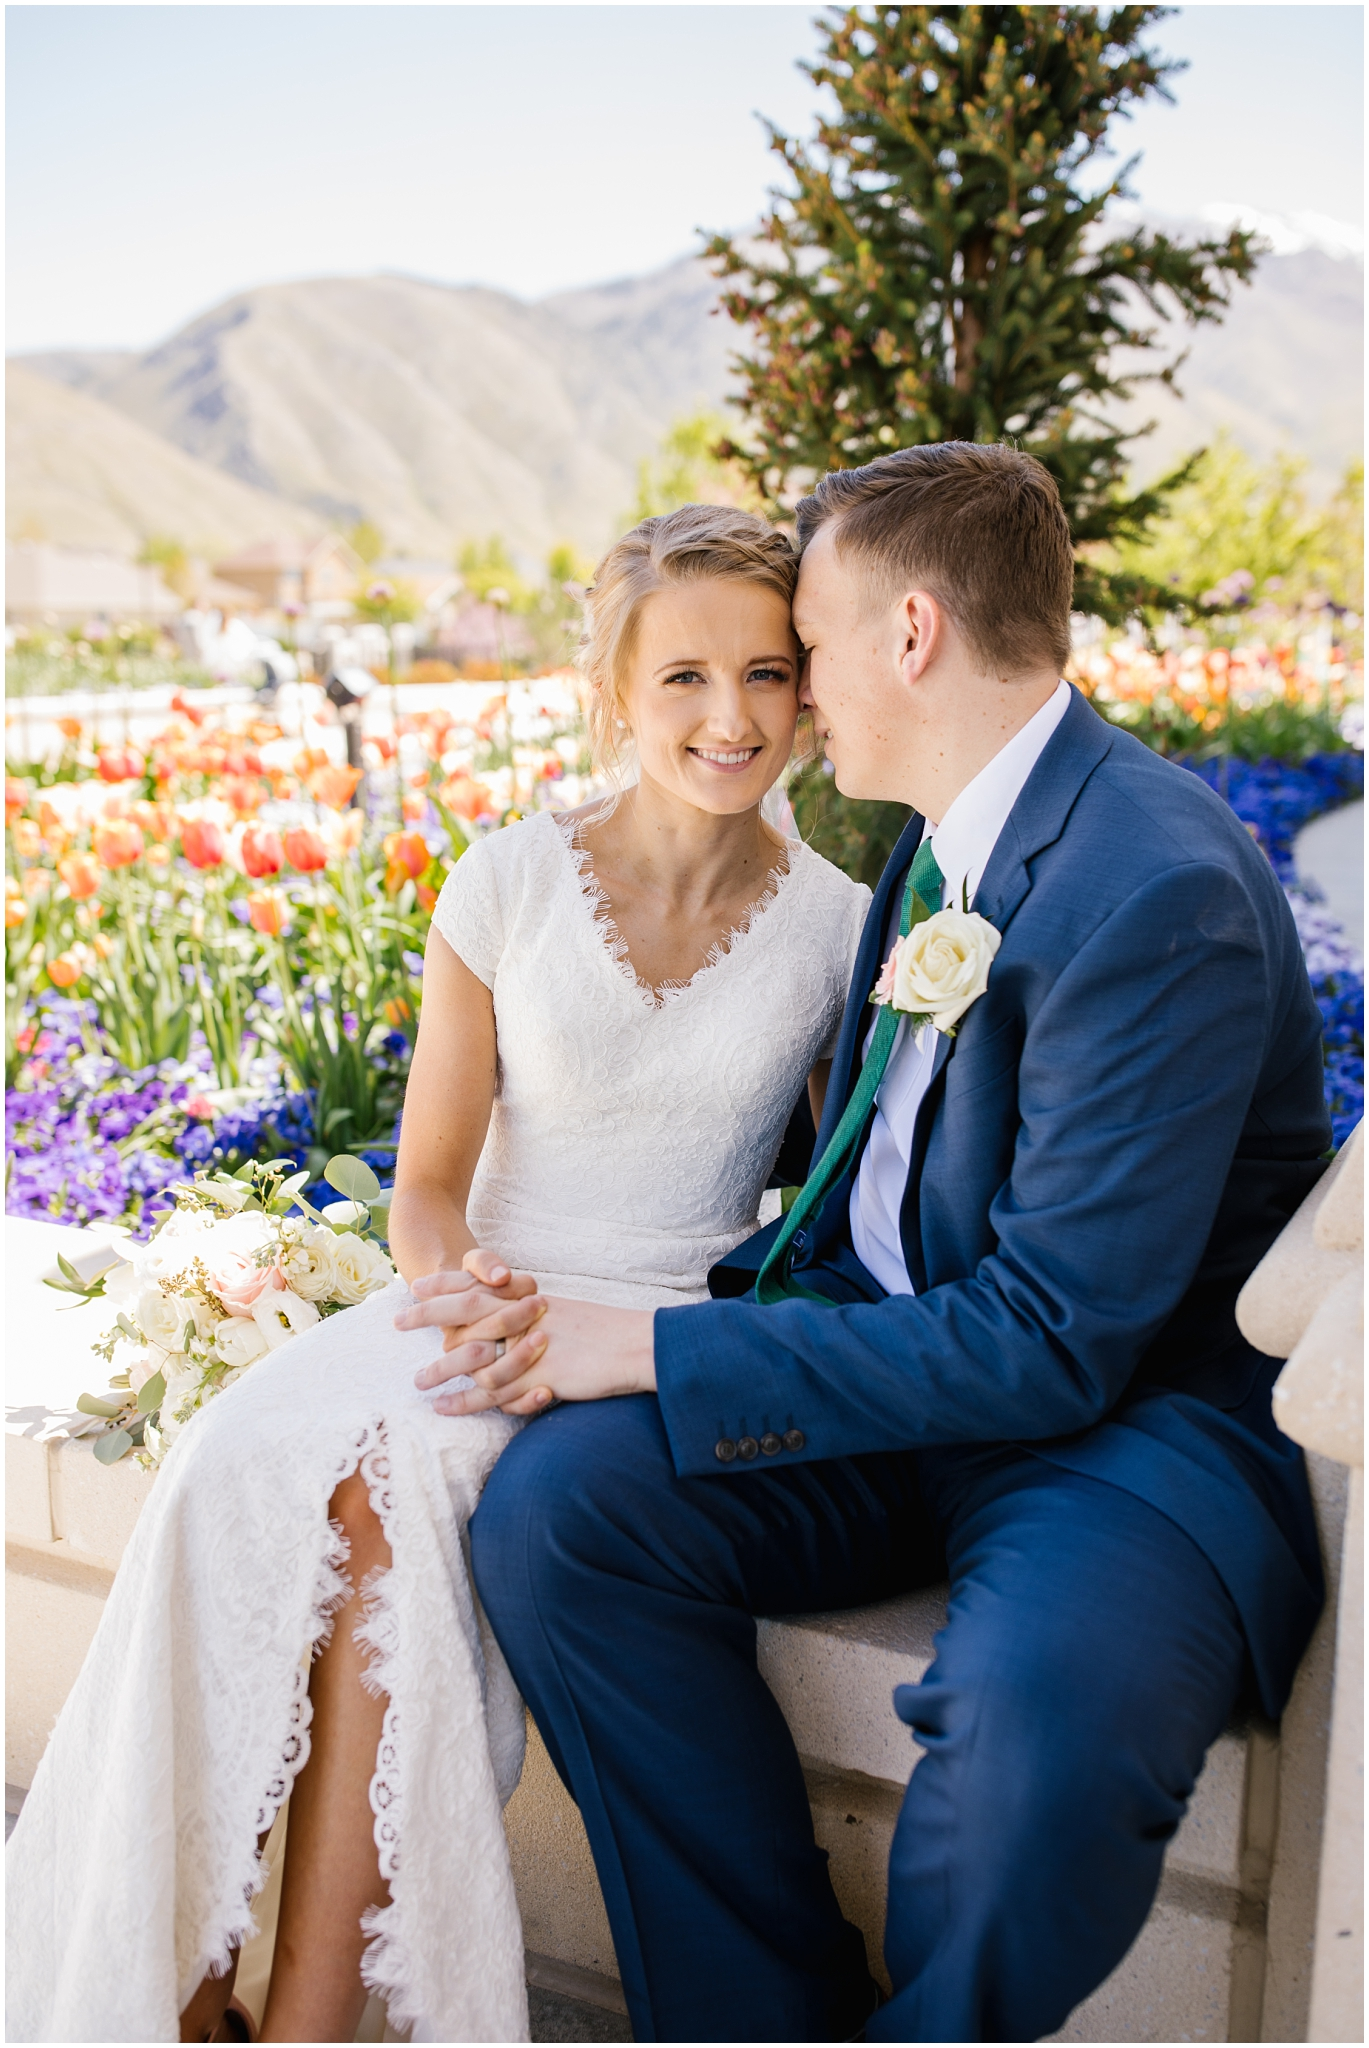 TA-Wedding-141_Lizzie-B-Imagery-Utah-Wedding-Photographer-Park-City-Salt-Lake-City-Thanksgiving-Point-Ashton-Gardens-Lehi-Utah.jpg